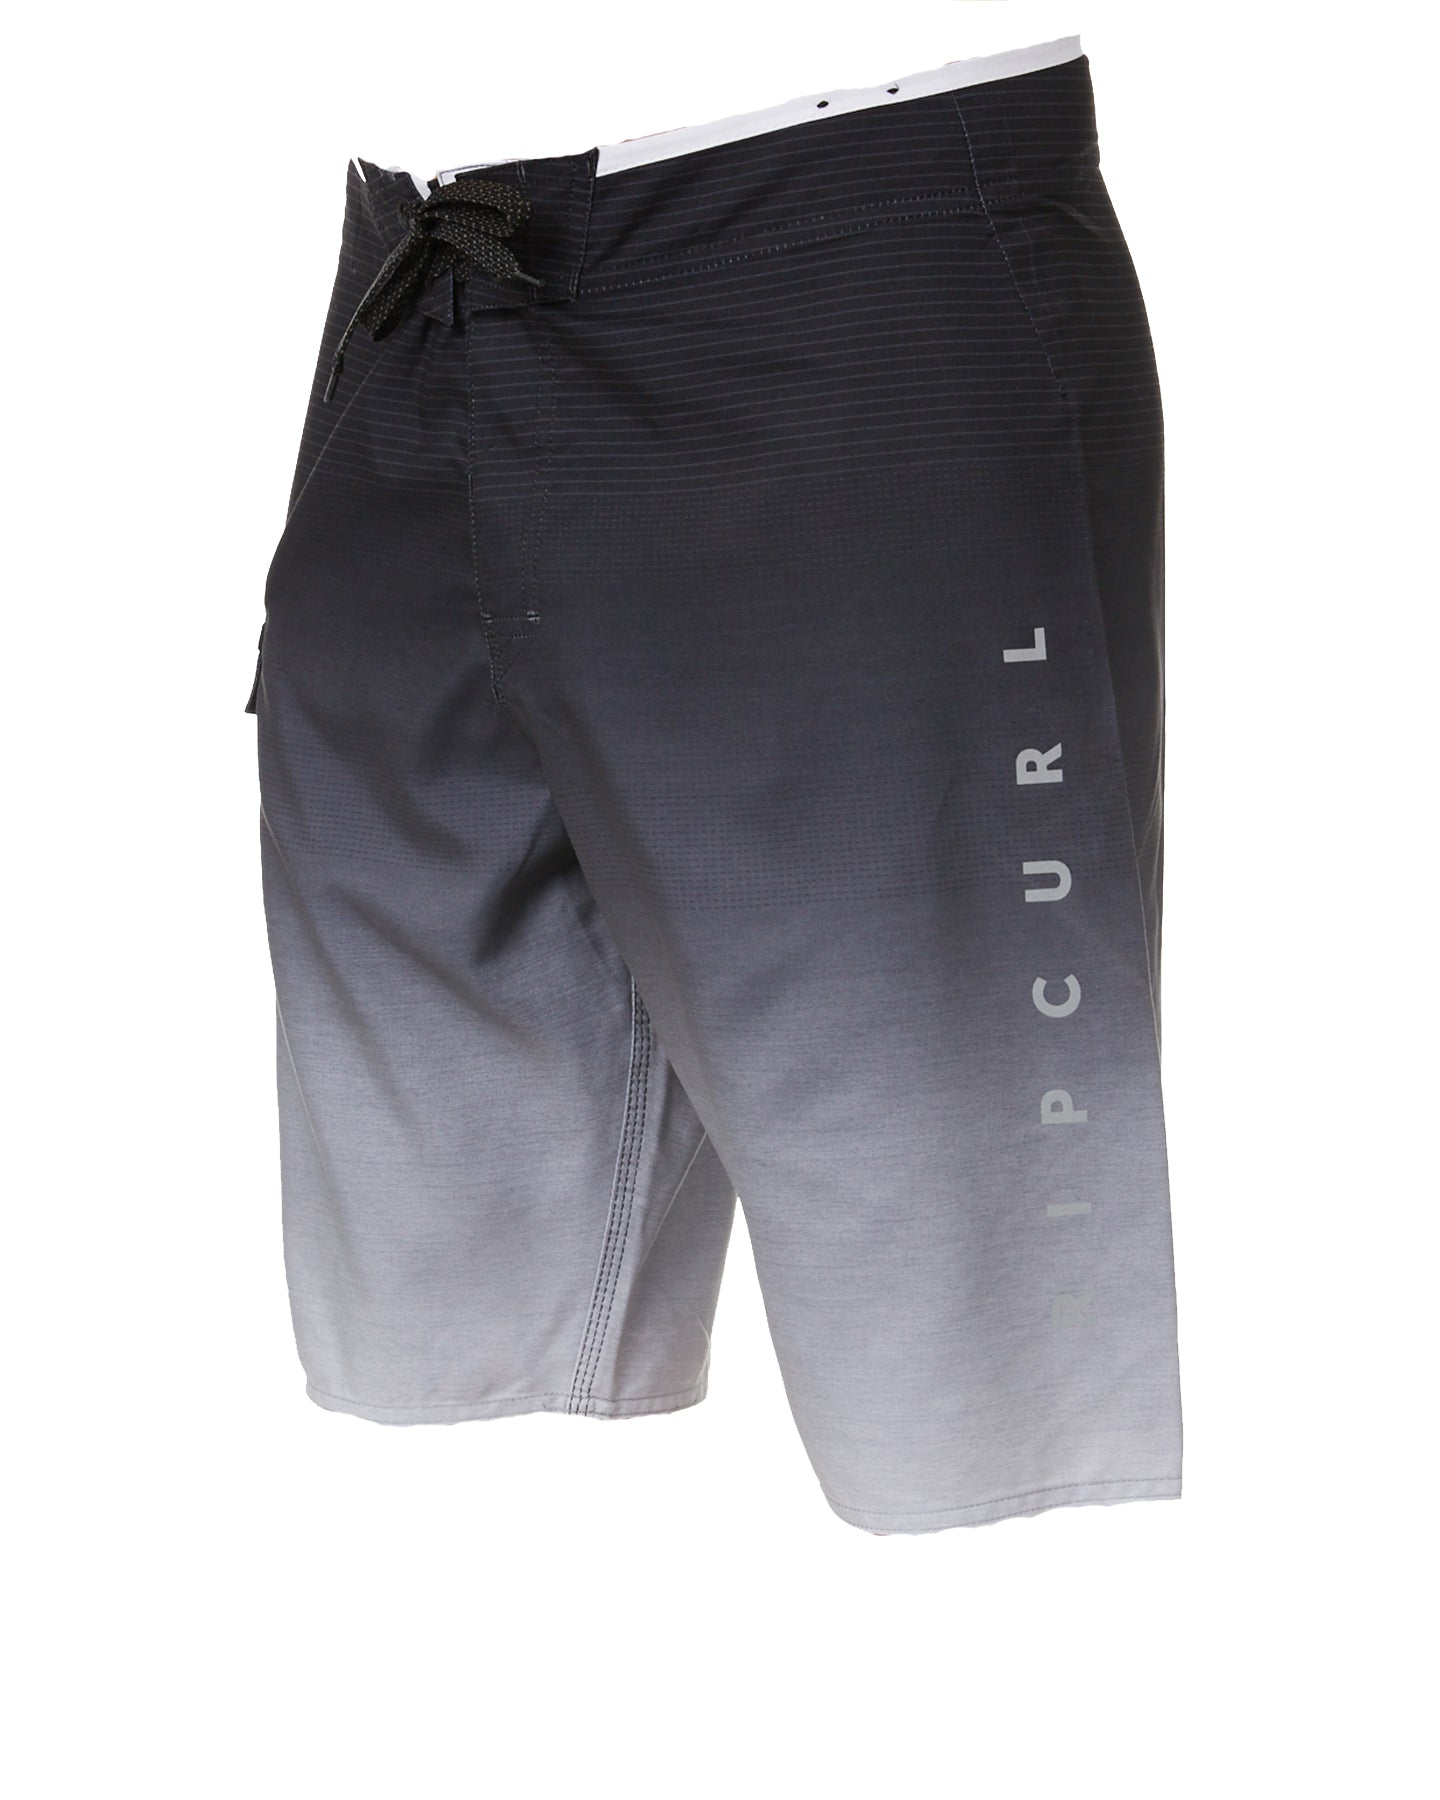 Rip Curl Shock Boardshort - Mens - Black